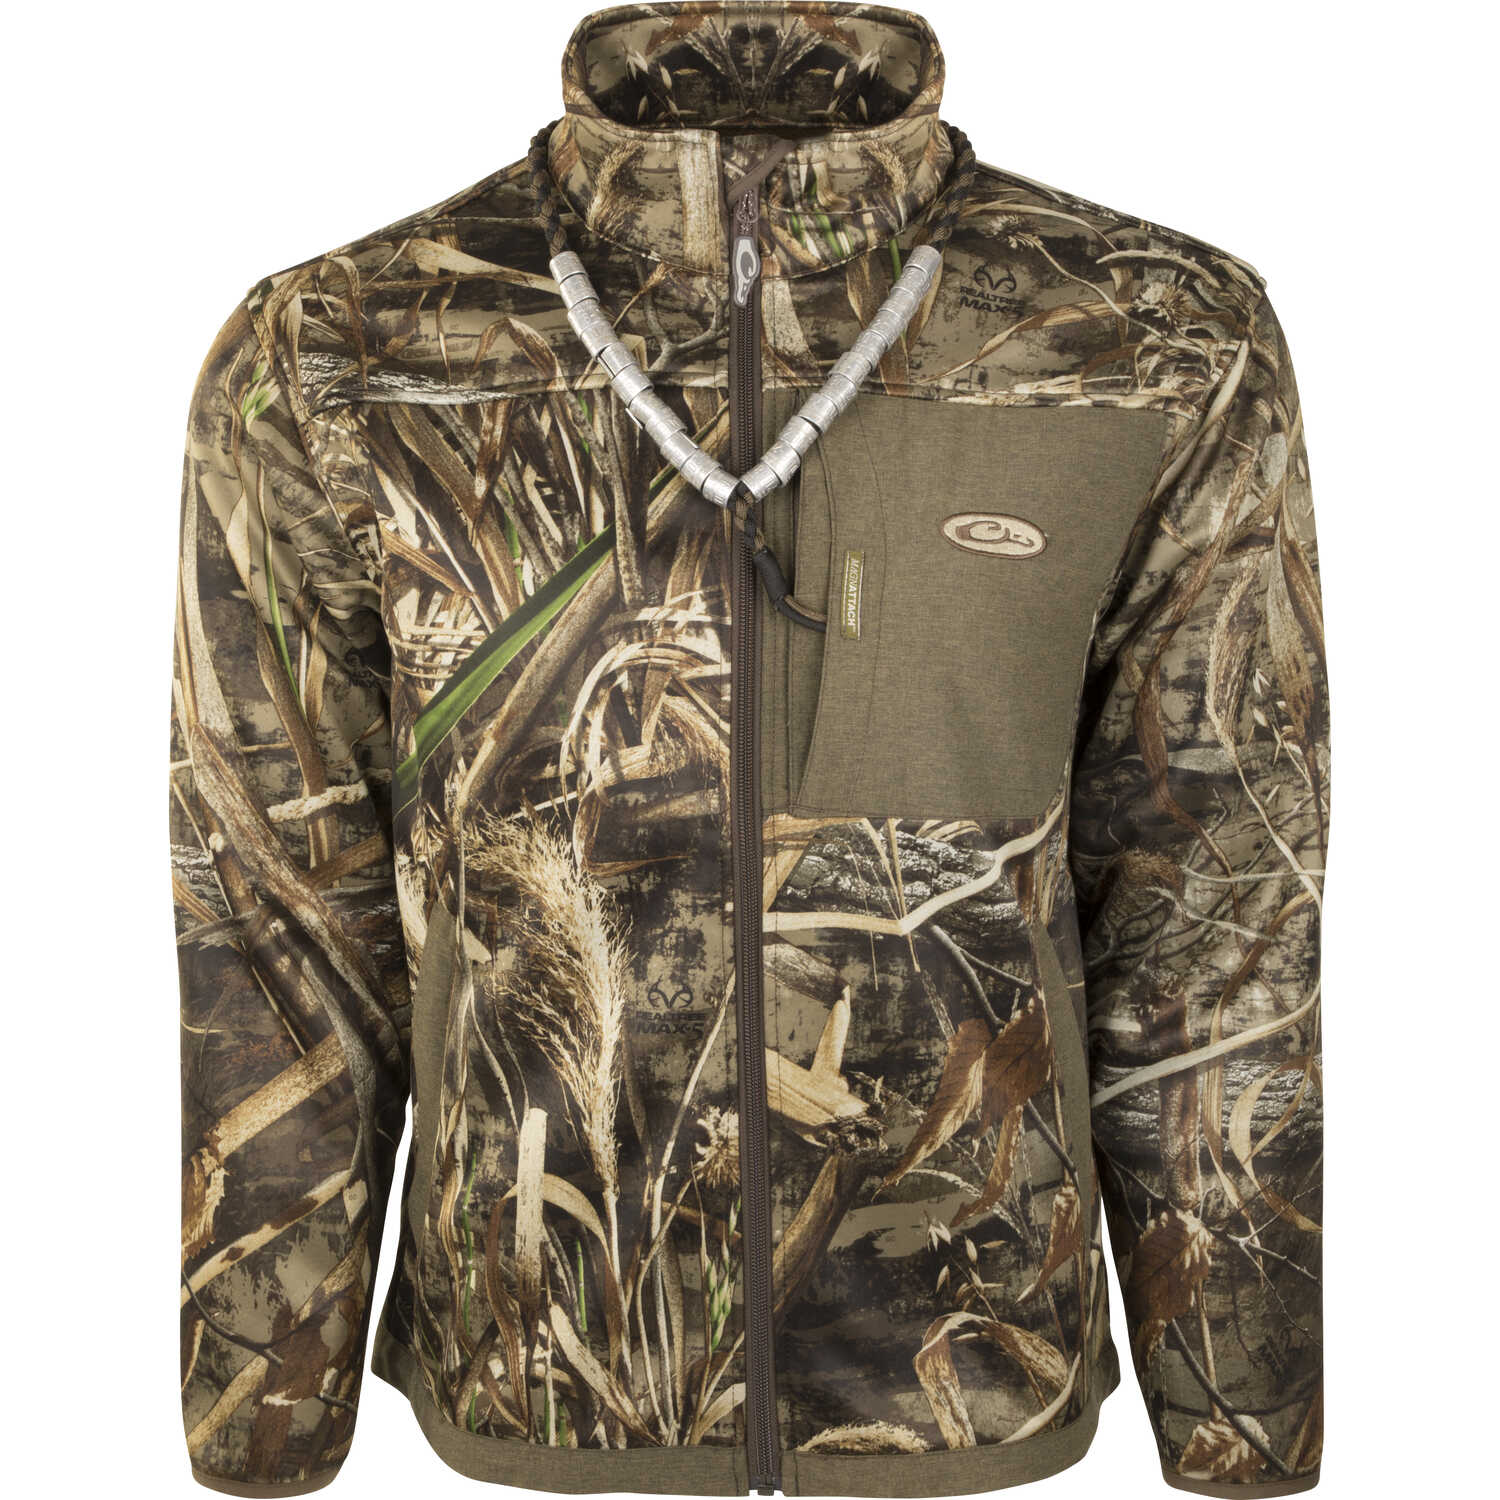 Drake  MST Endurance  L  Long Sleeve  Men's  Full-Zip  Liner  Realtree Max-5